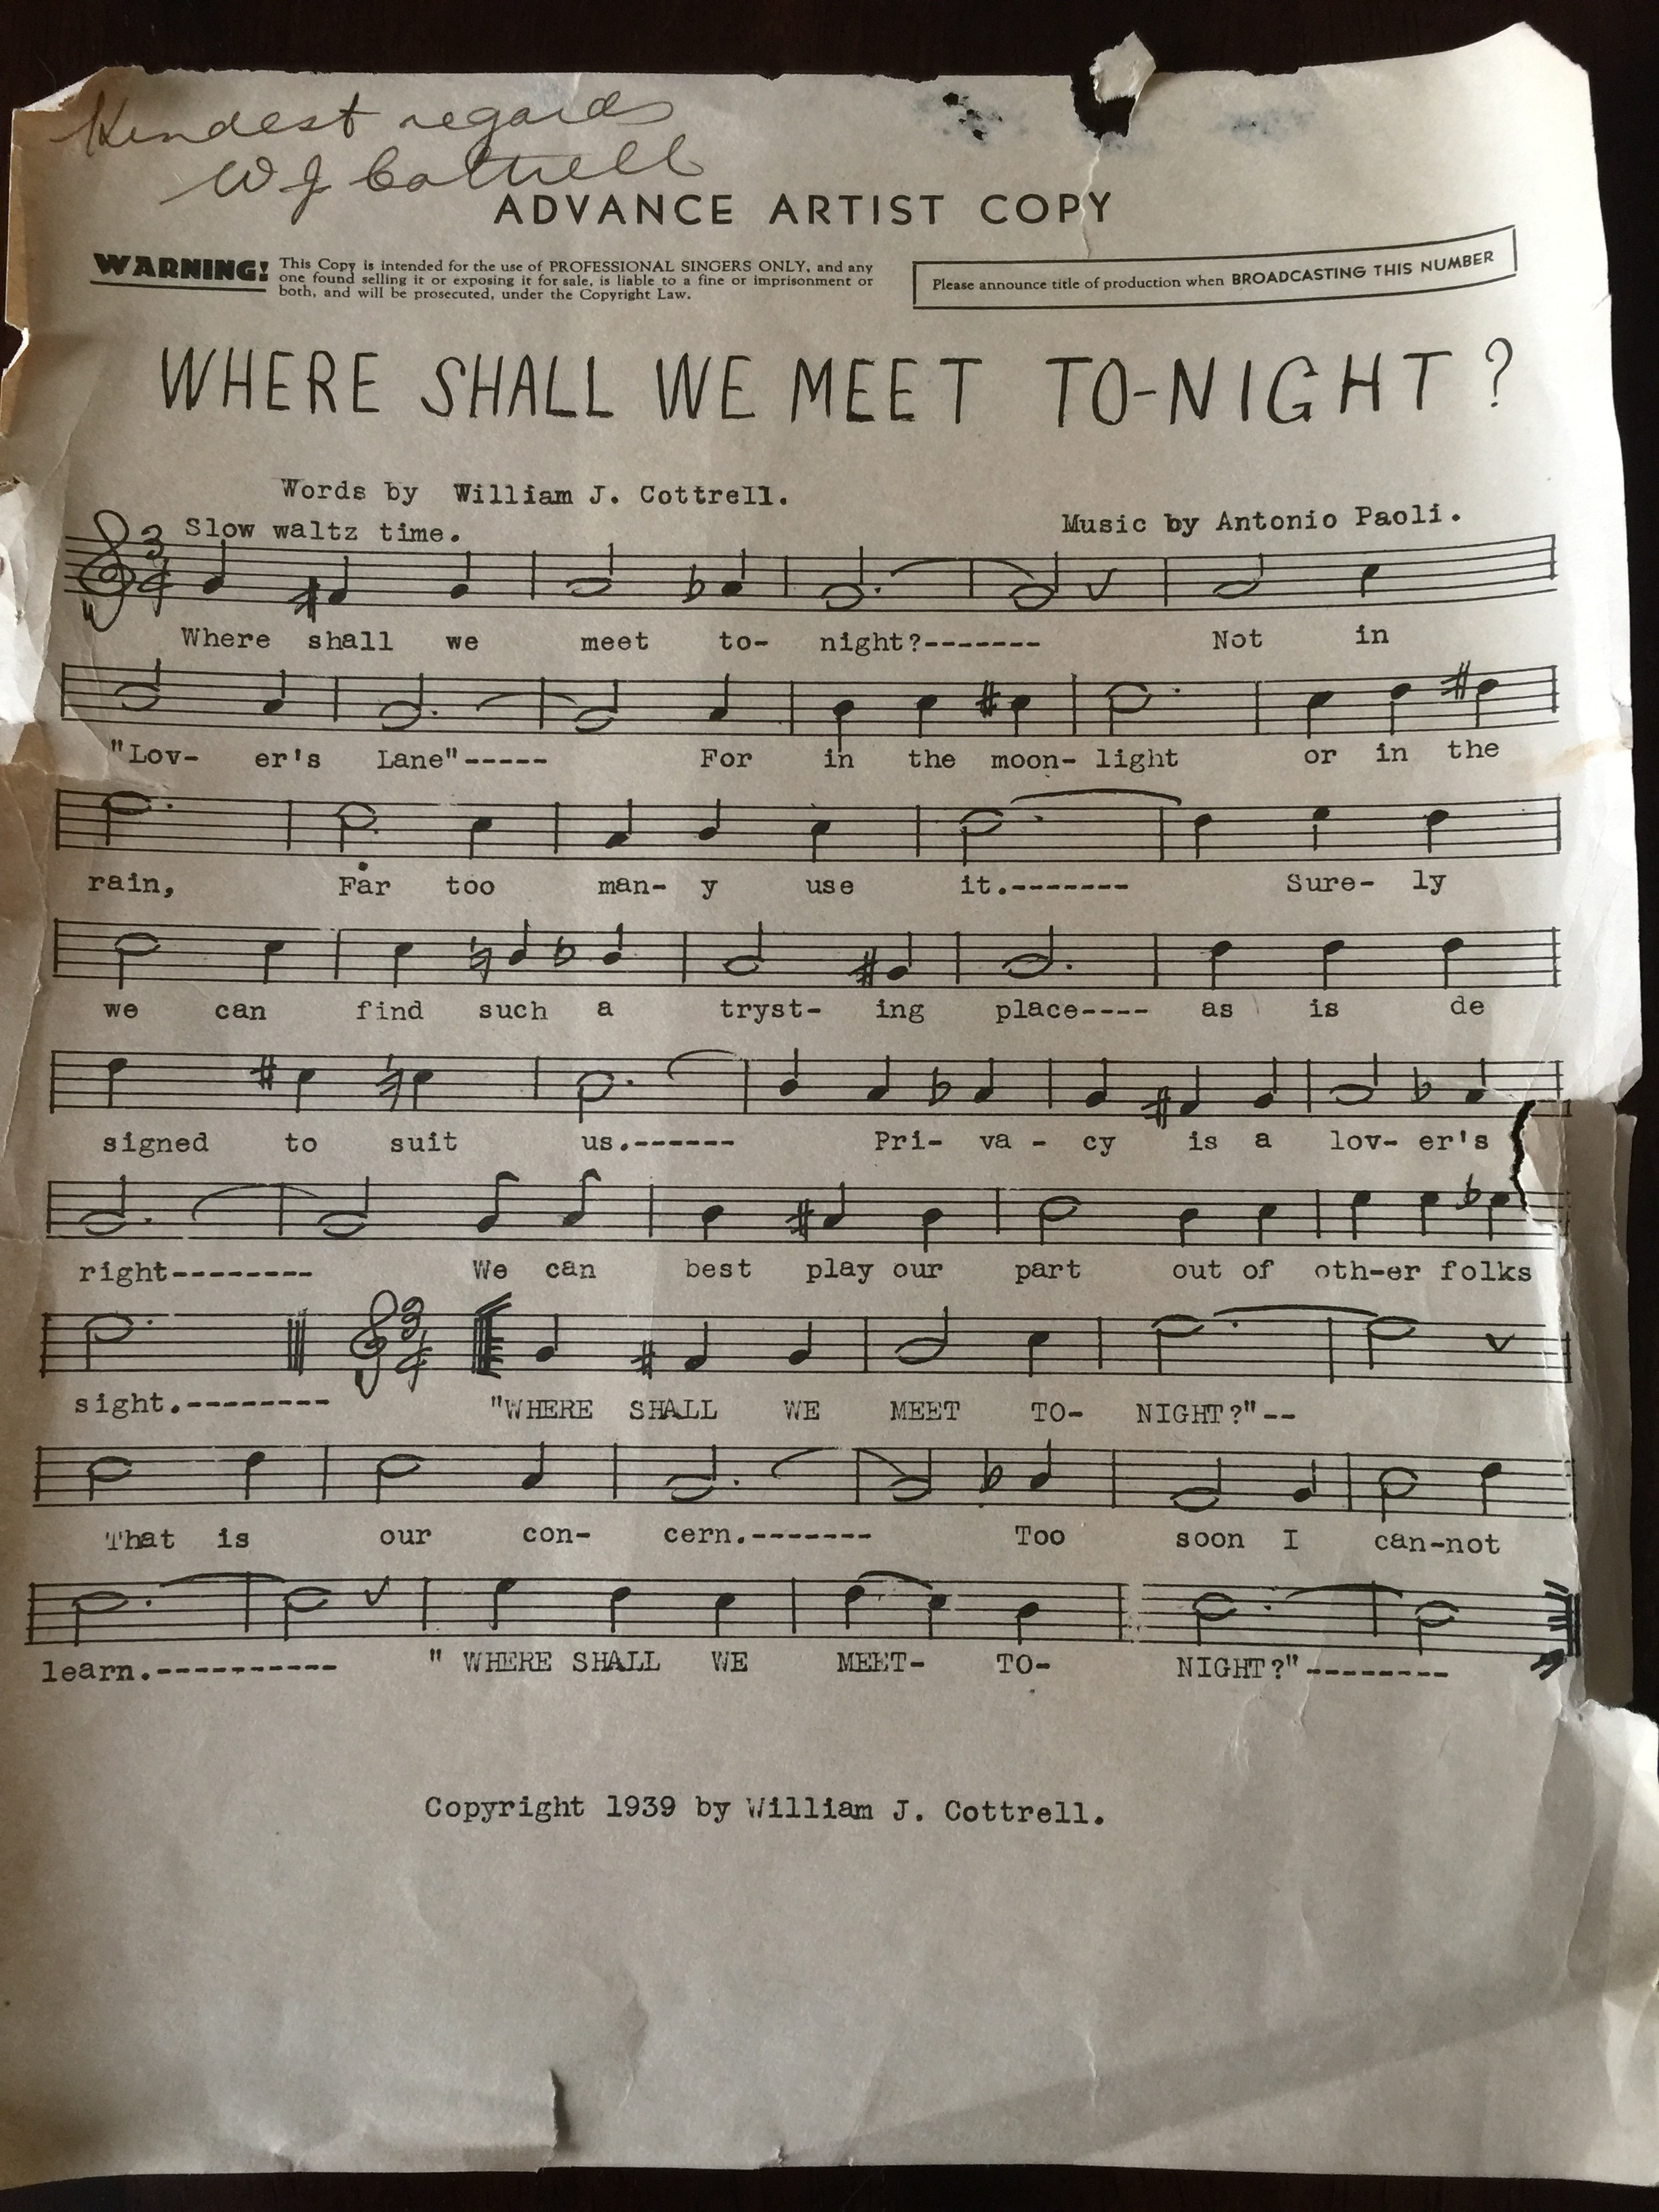 Wm Cottrell sheet music.JPG